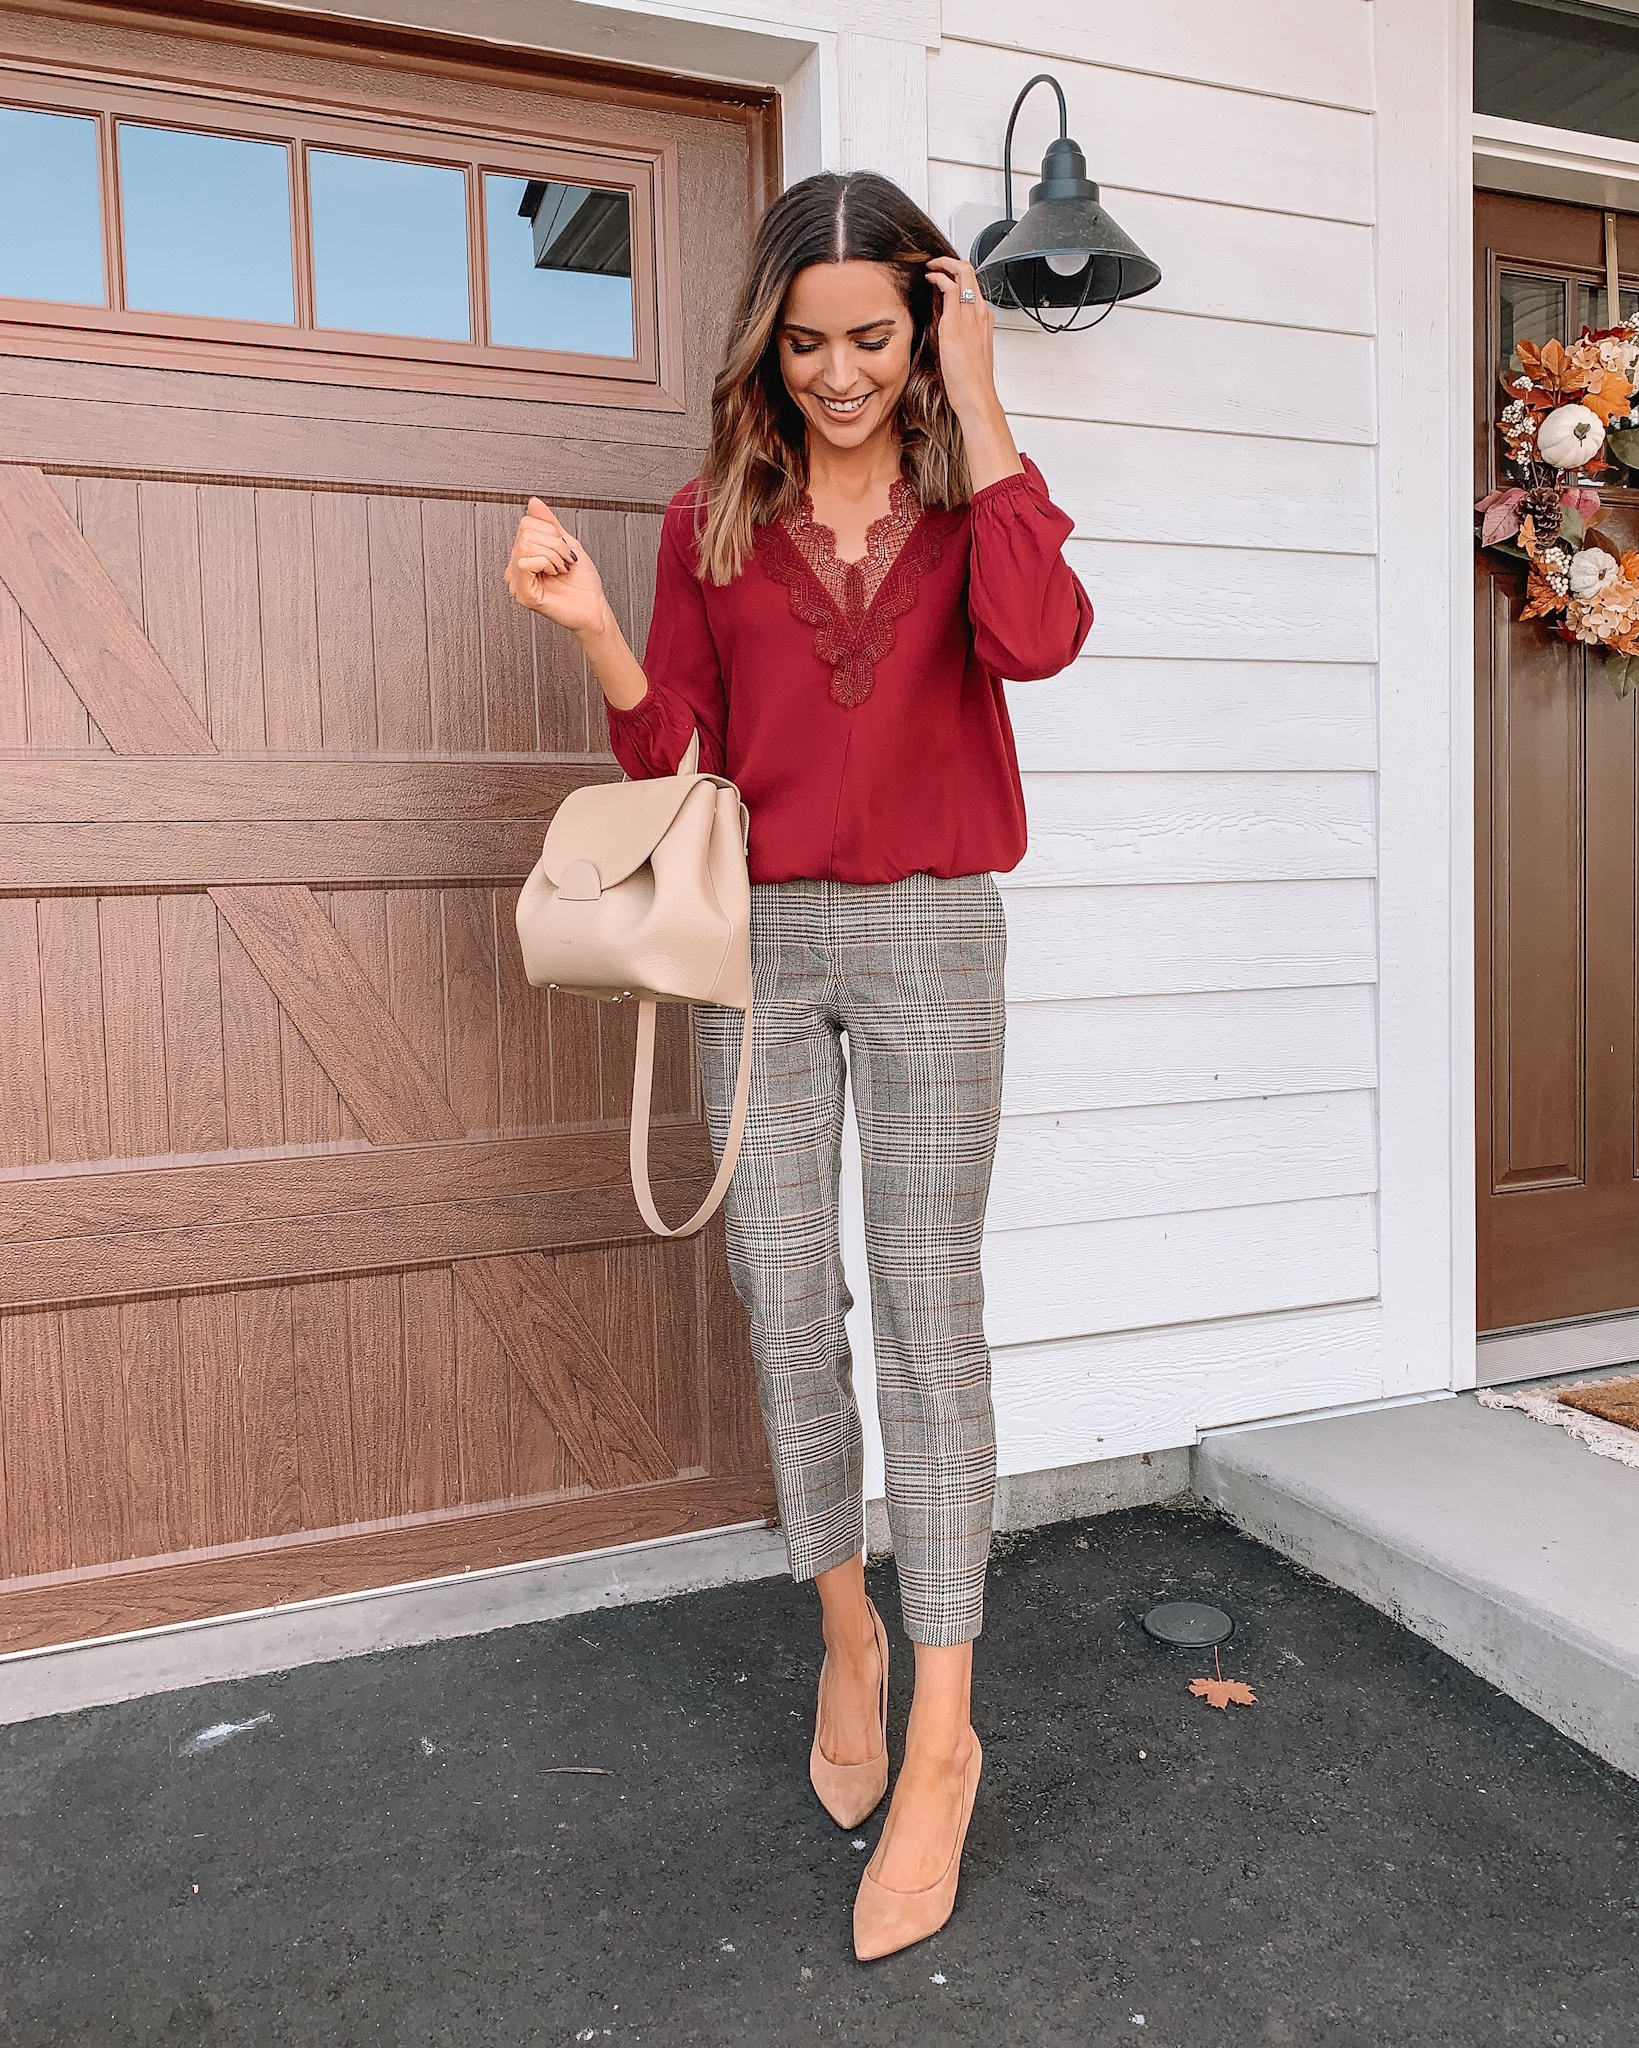 how to style plaid pants, workwear outfit fall, express, polene Paris bag